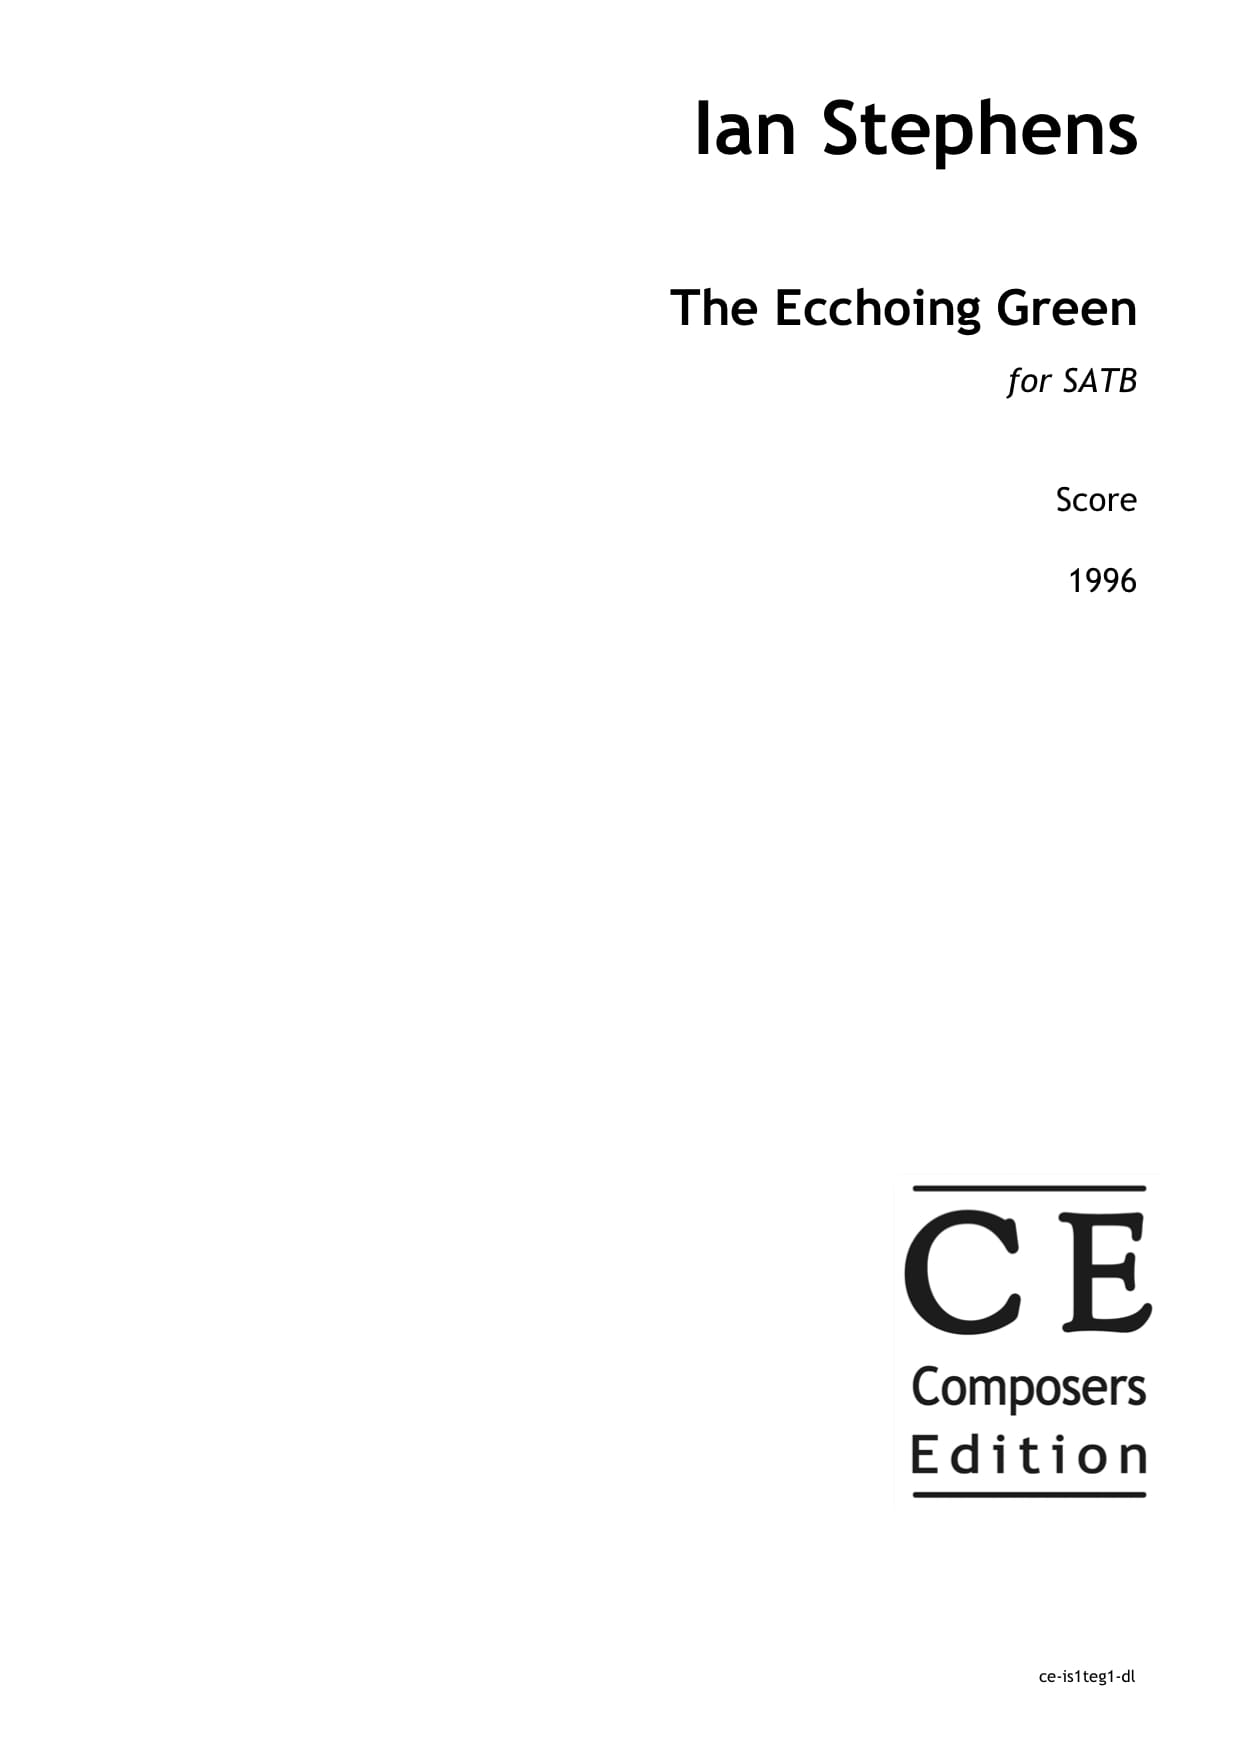 Ian Stephens: The Ecchoing Green for SATB choir